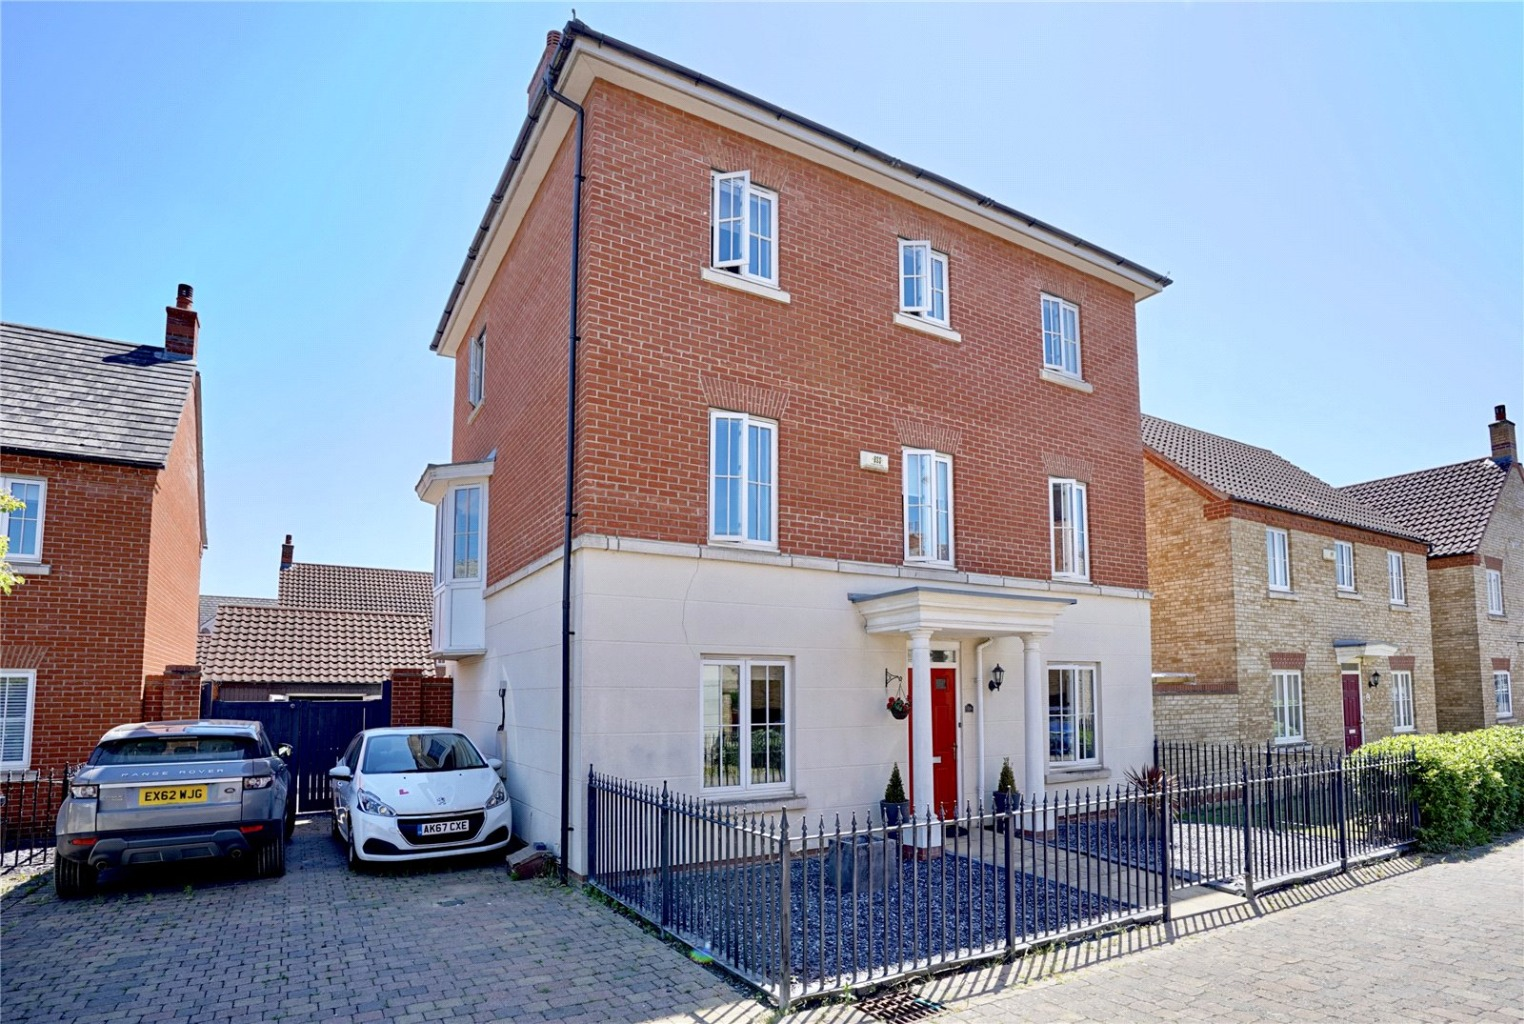 5 bed  for sale in Banks Court, St. Neots, PE19